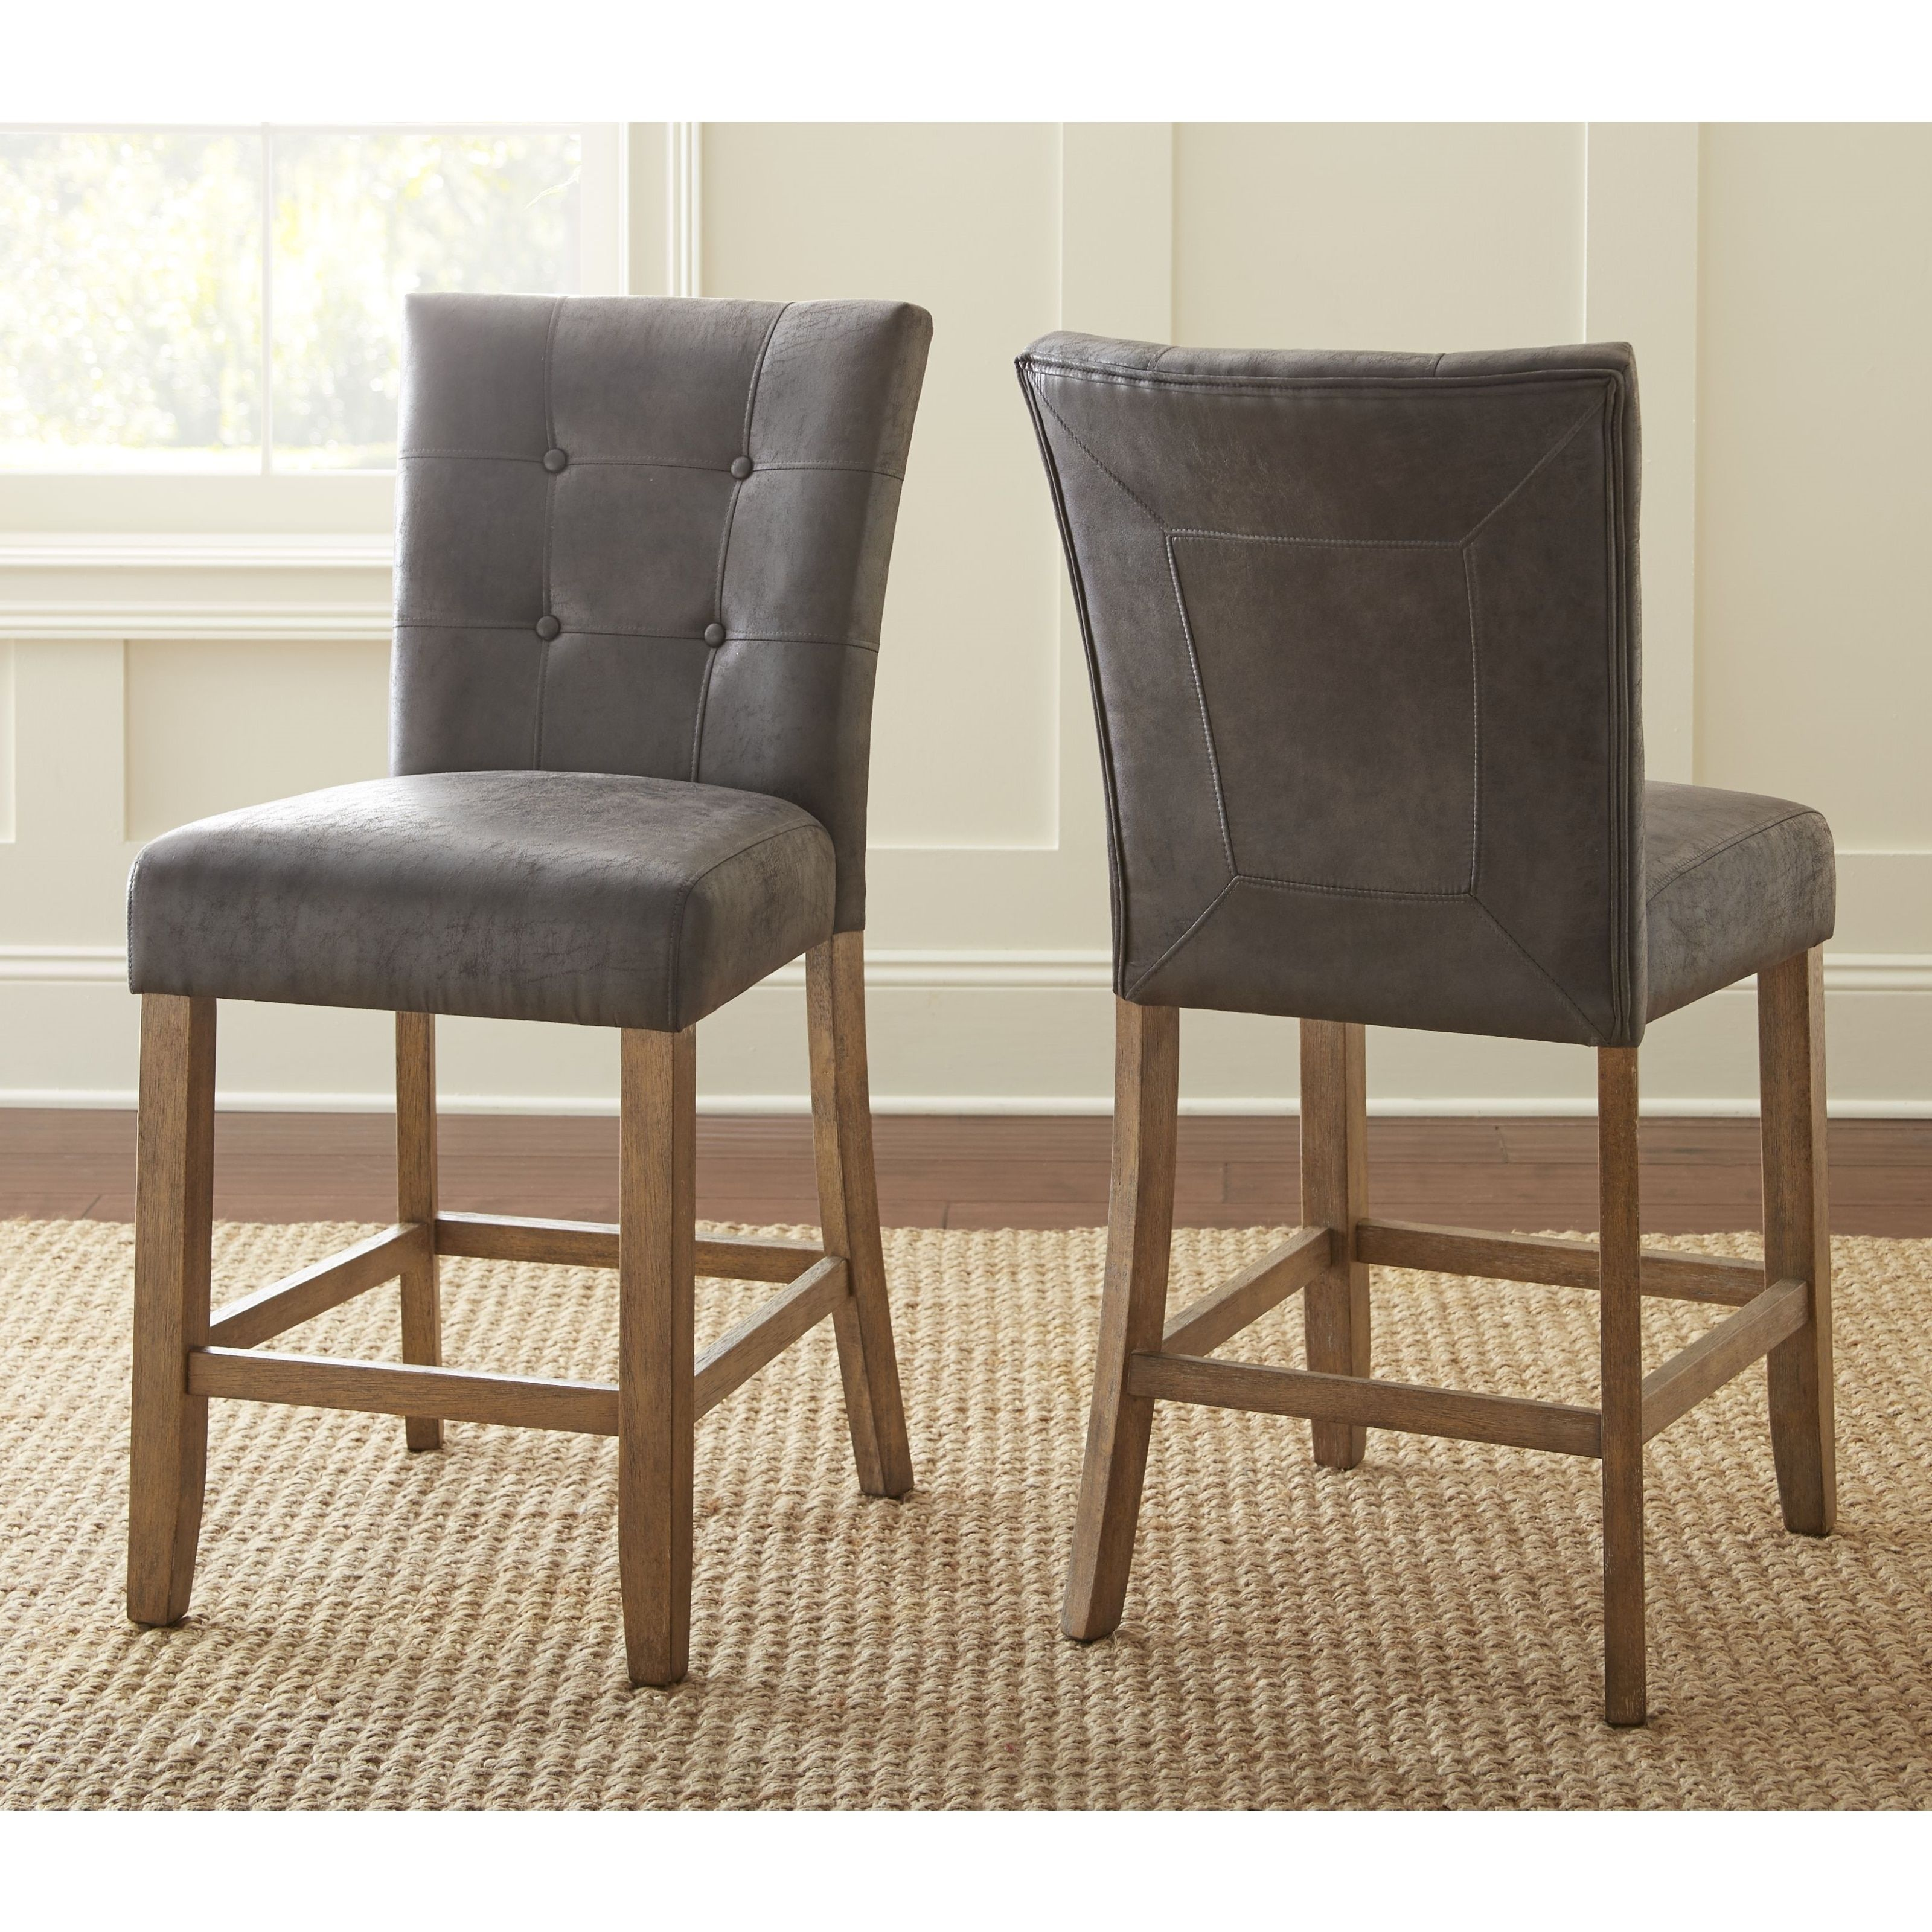 Overstock Com Online Shopping Bedding Furniture Electronics Jewelry Clothing More Dining Chairs Bar Chairs Counter Chairs